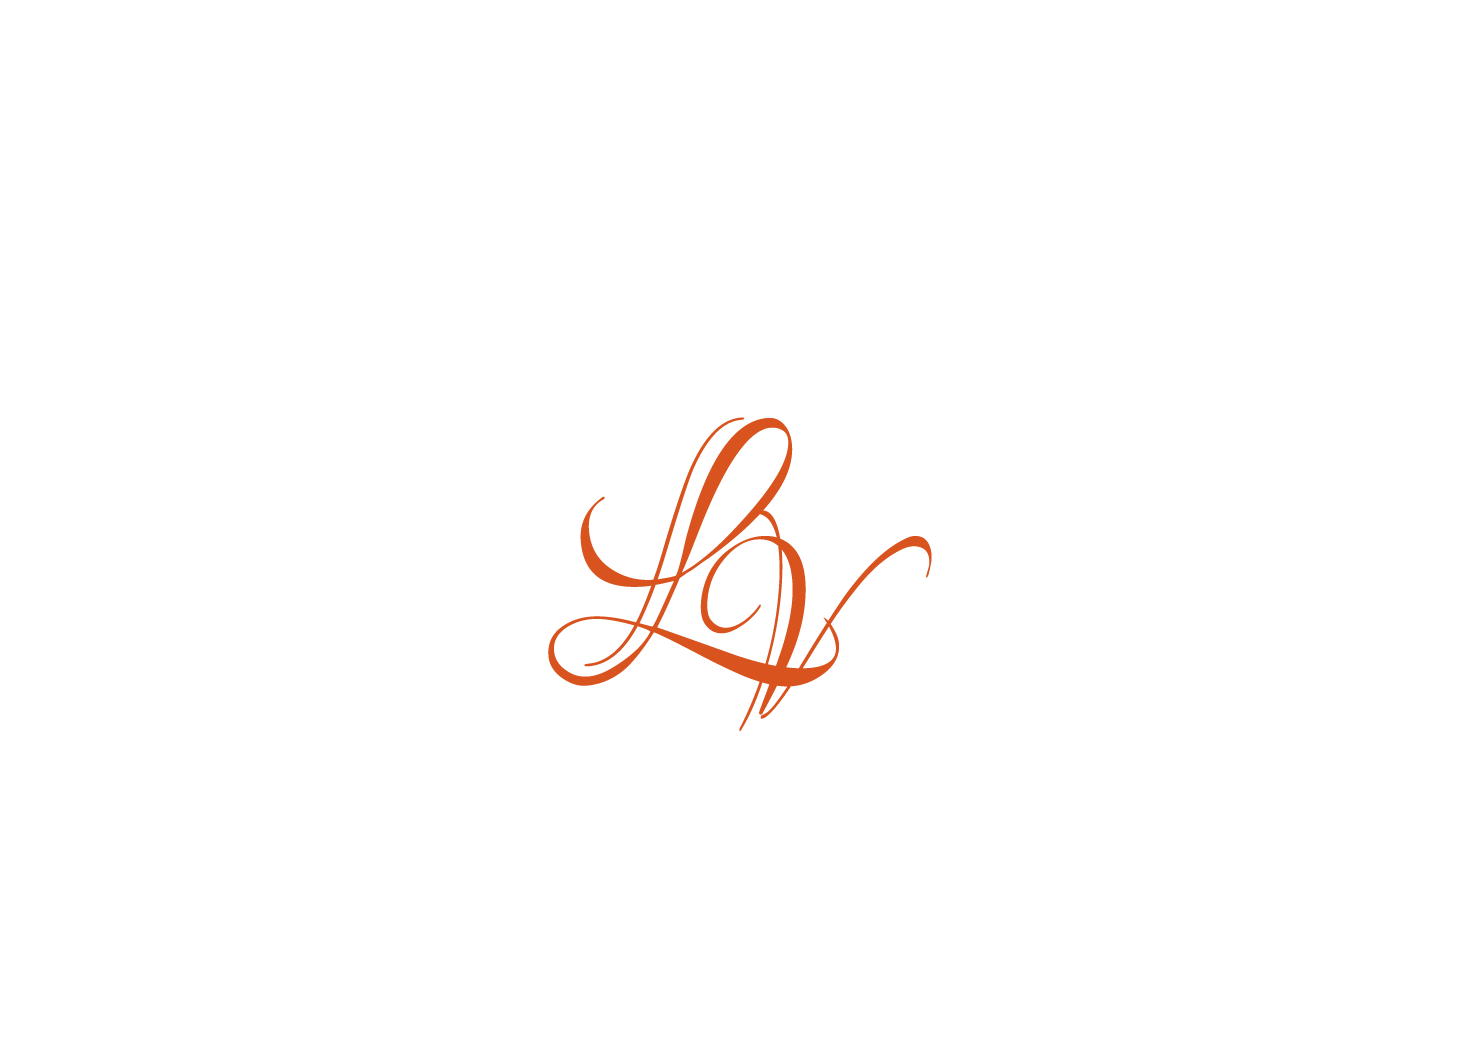 Lexington Village